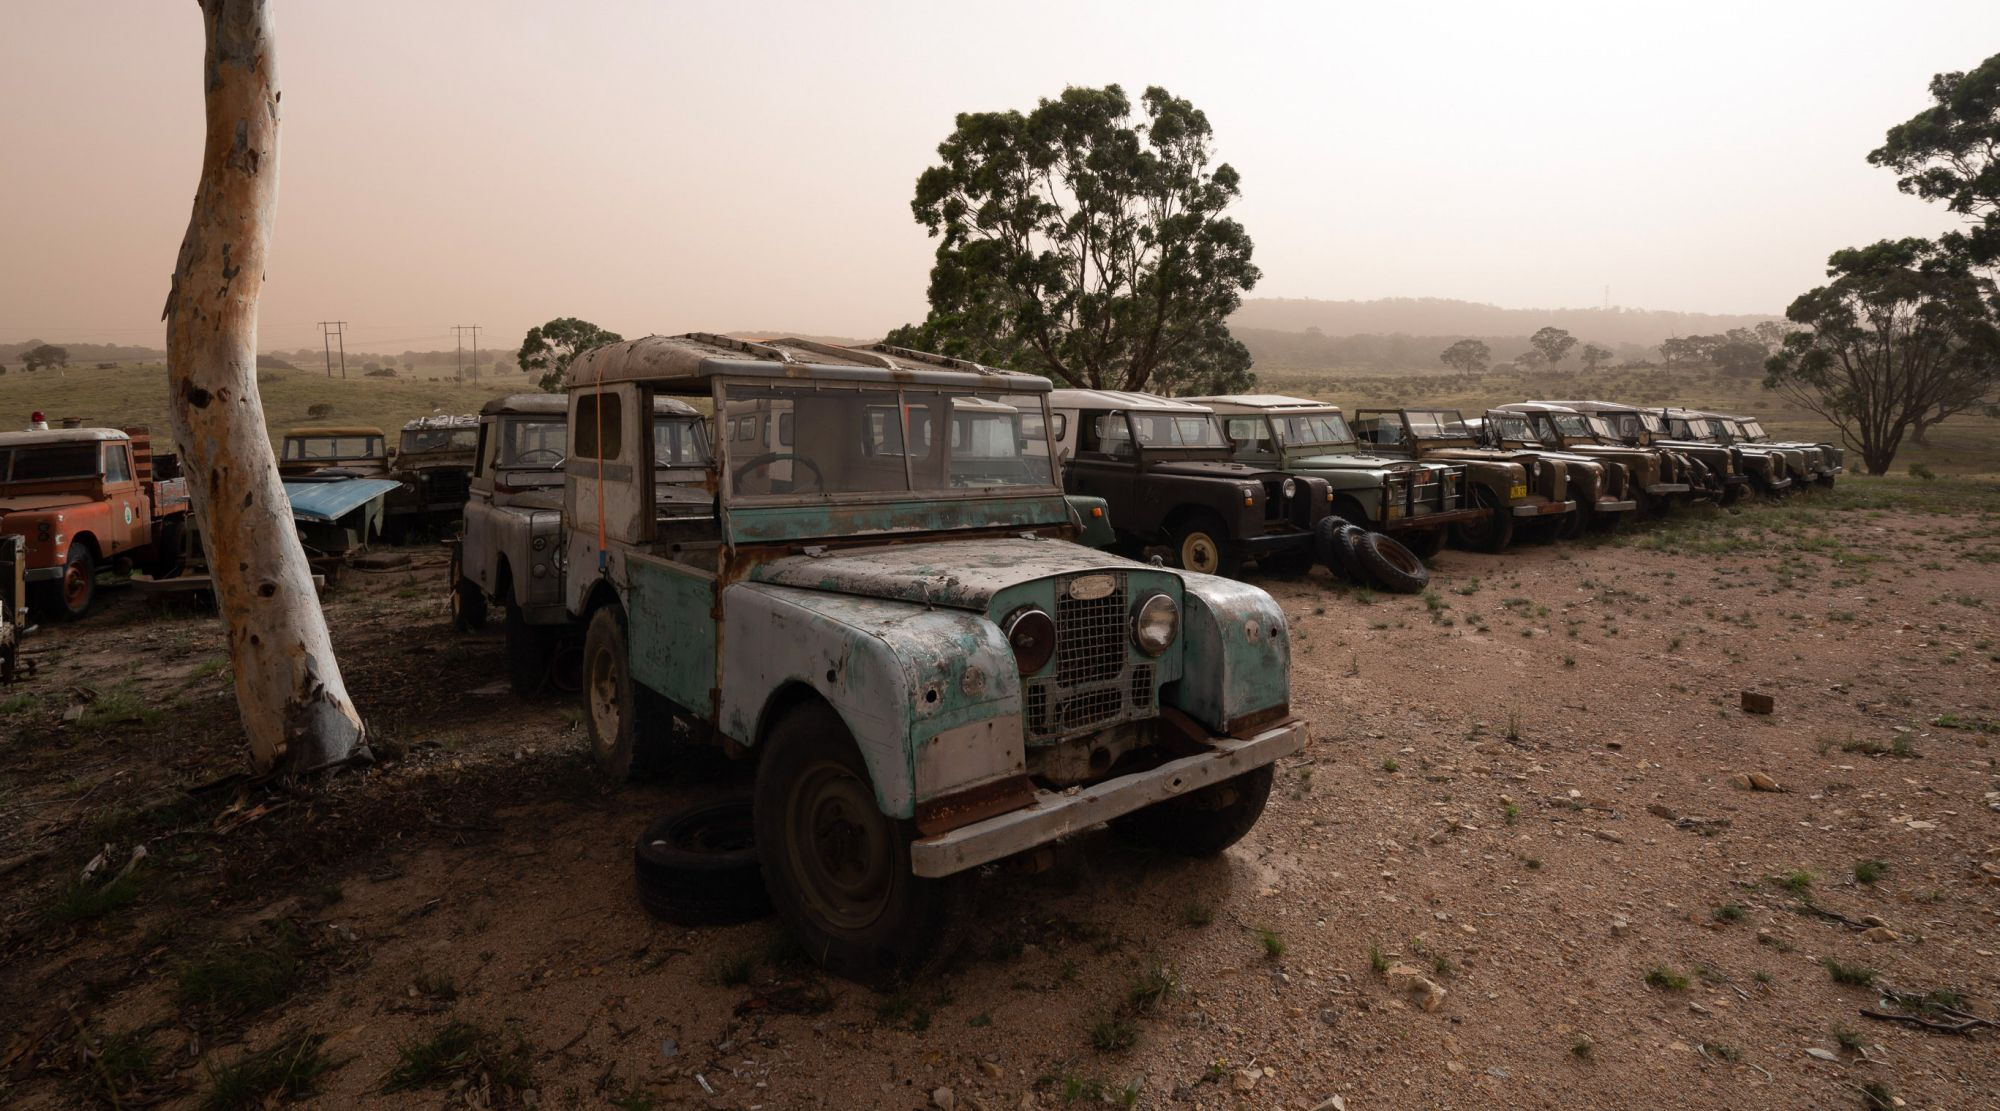 Jaunt Motors Land Rover 4x4 in Australia